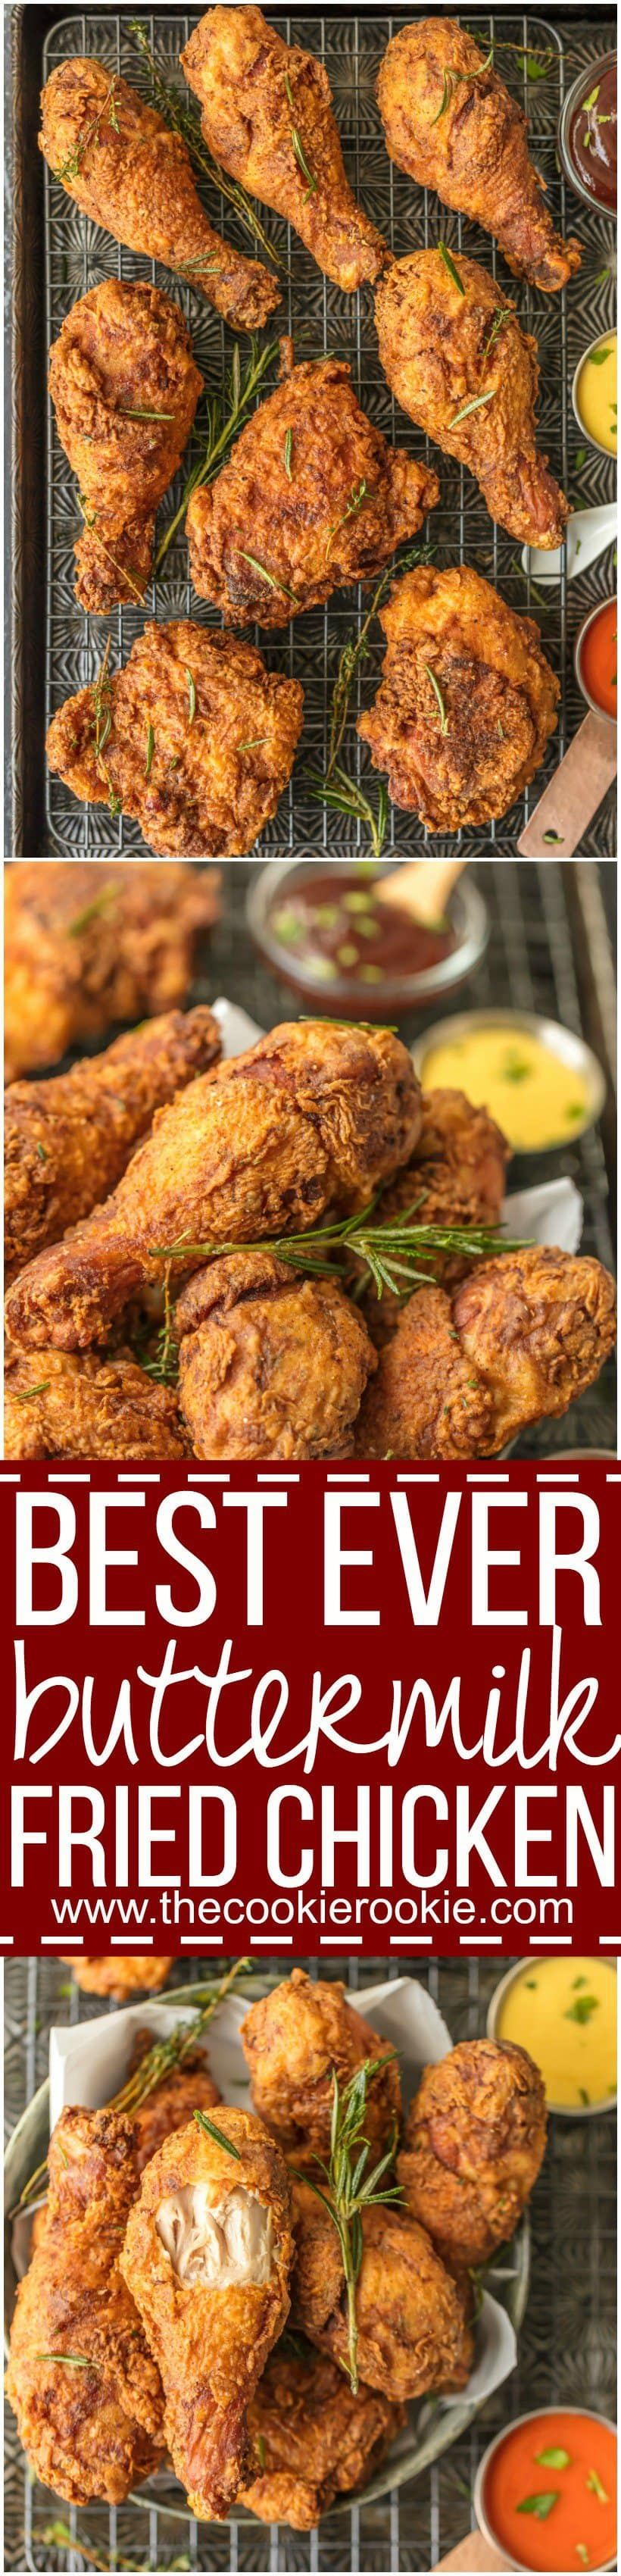 This Best Ever Buttermilk Fried Chicken Will Become The Favorite Chicken Of Your Life Anyone C Chicken Recipes Fried Chicken Recipes Best Fried Chicken Recipe